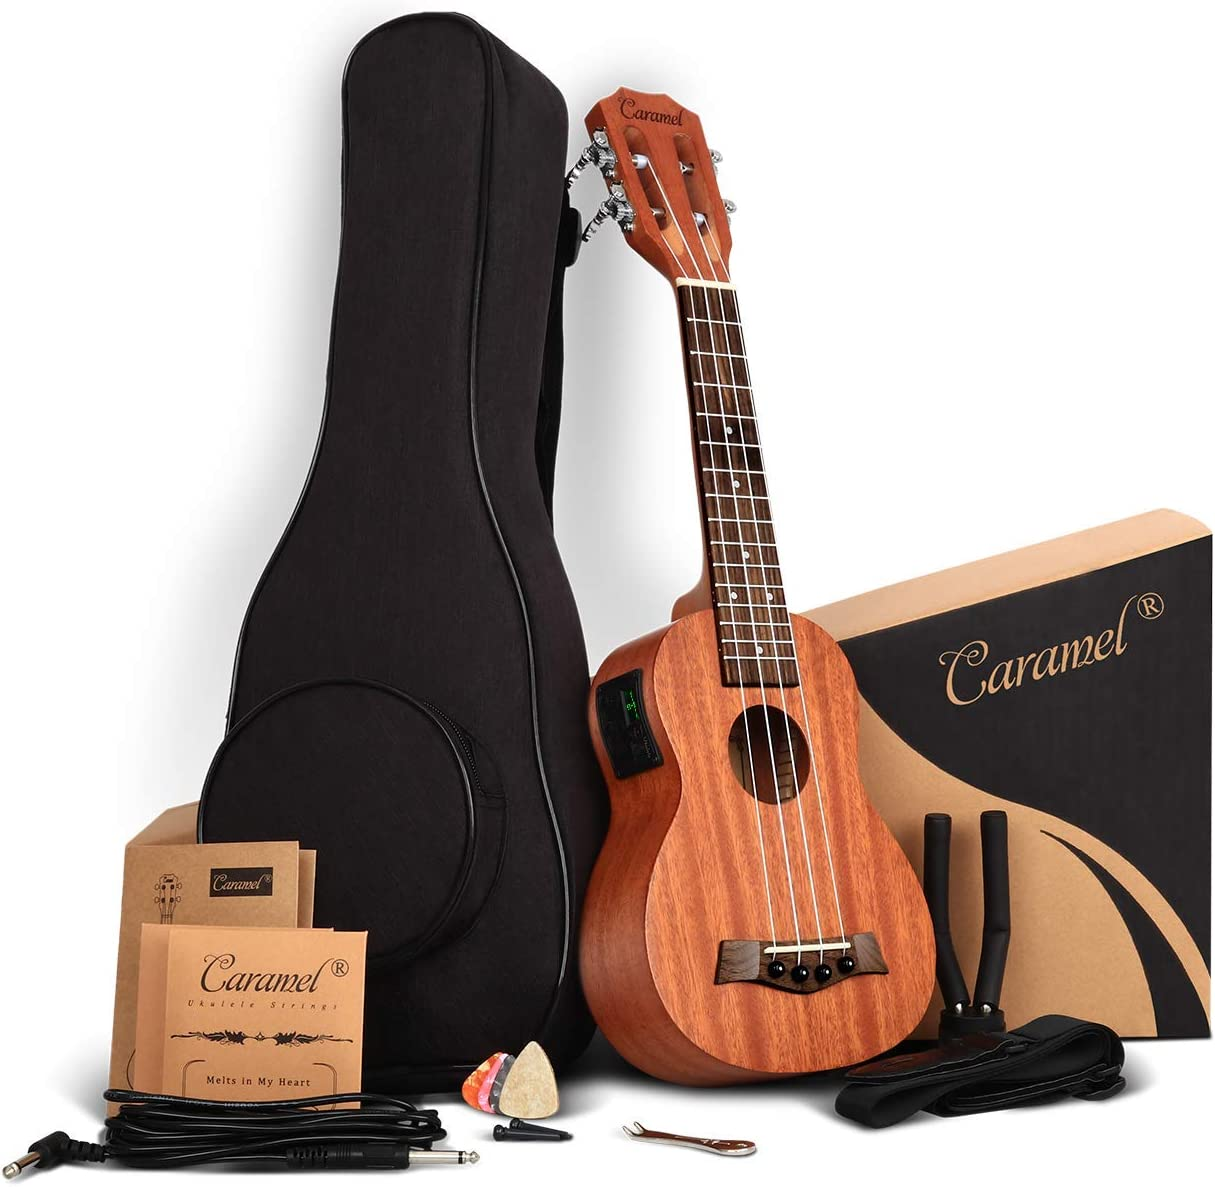 21 inch Solid Mahogany obere and zurück - Caramel CS419 Soprano LCD color display Electric Ukulele ukelele Kit Bundle Aquila Strings, Padded Gig Bag, Strap Hanger Set